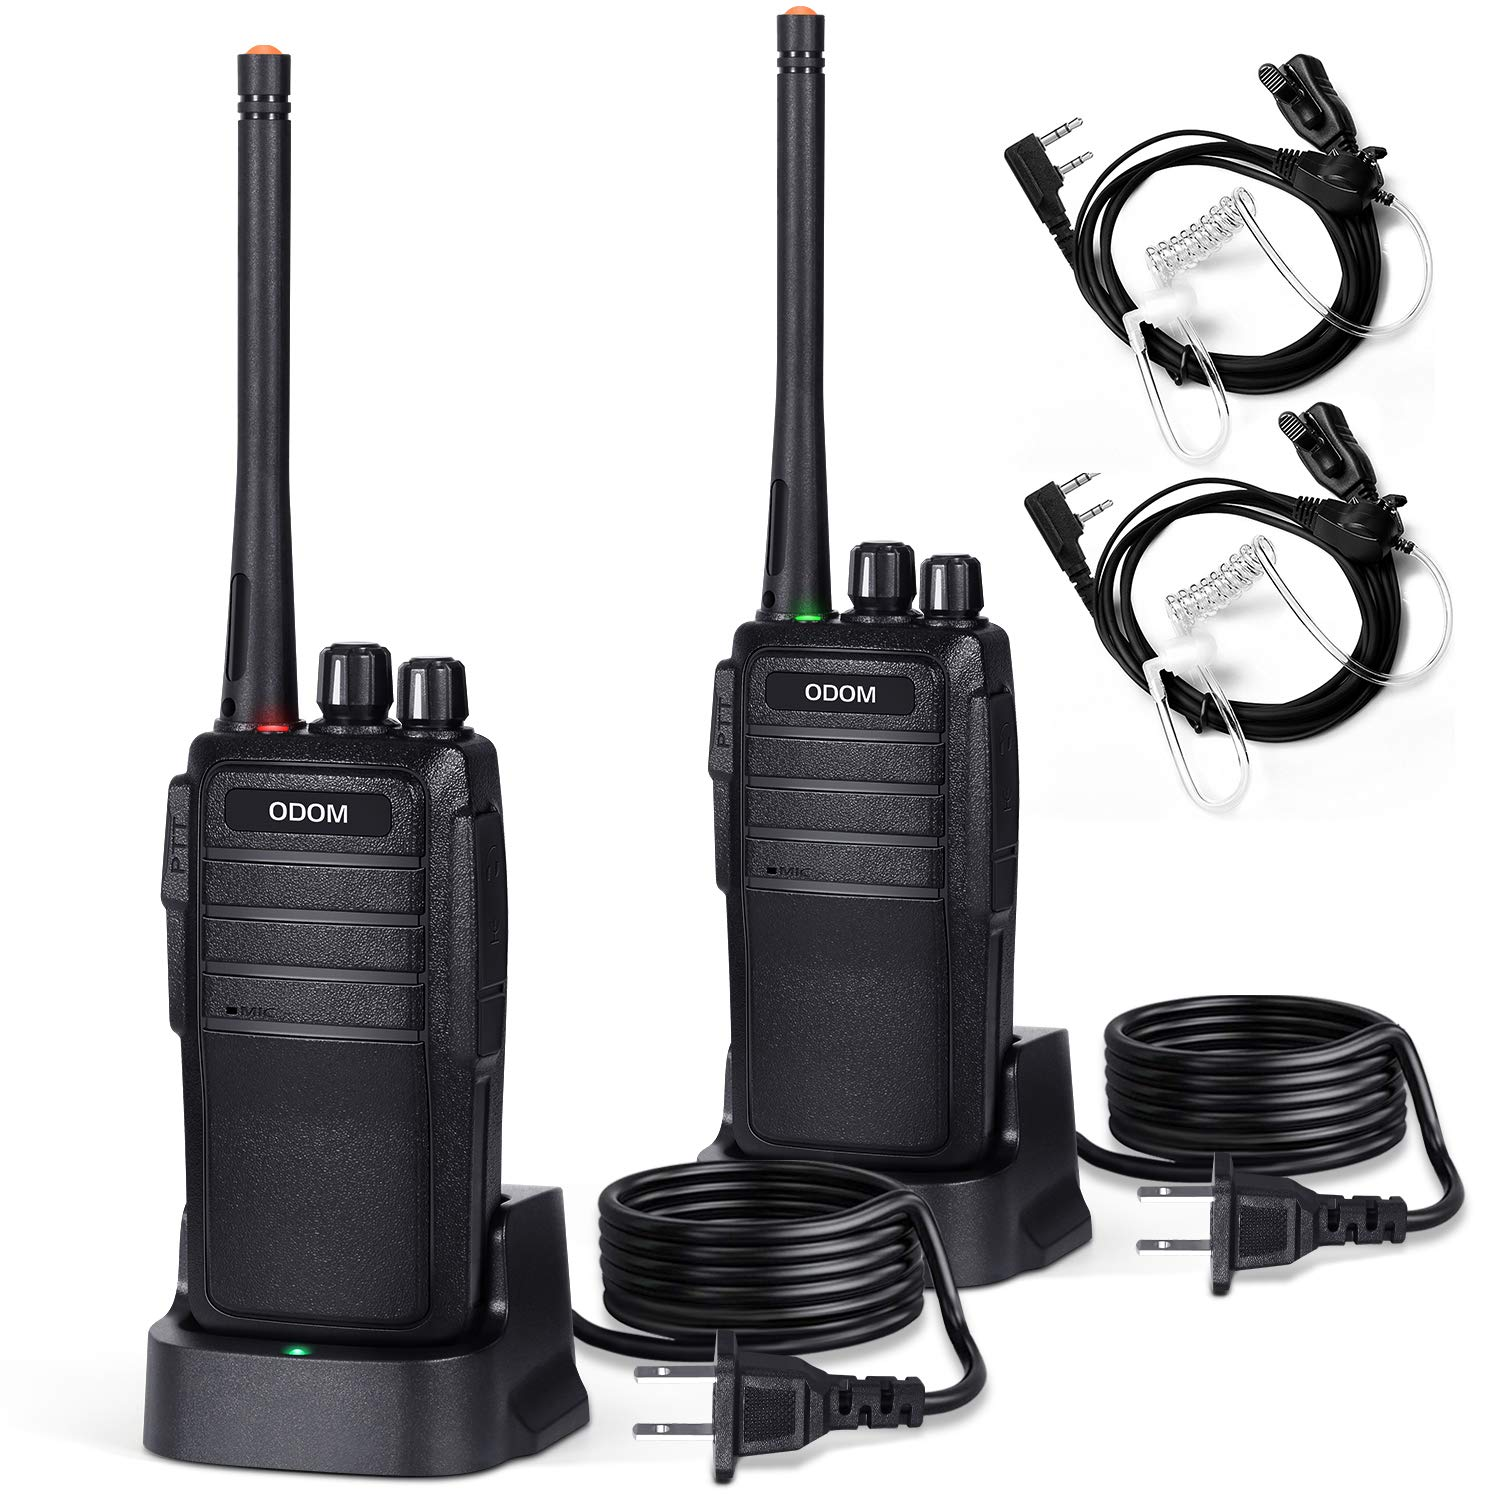 Two Way Radios Long Range Rechargeable Walkie Talkies for Adults - 16 Channels Handheld 2 Way Radio with Earpiece Headset